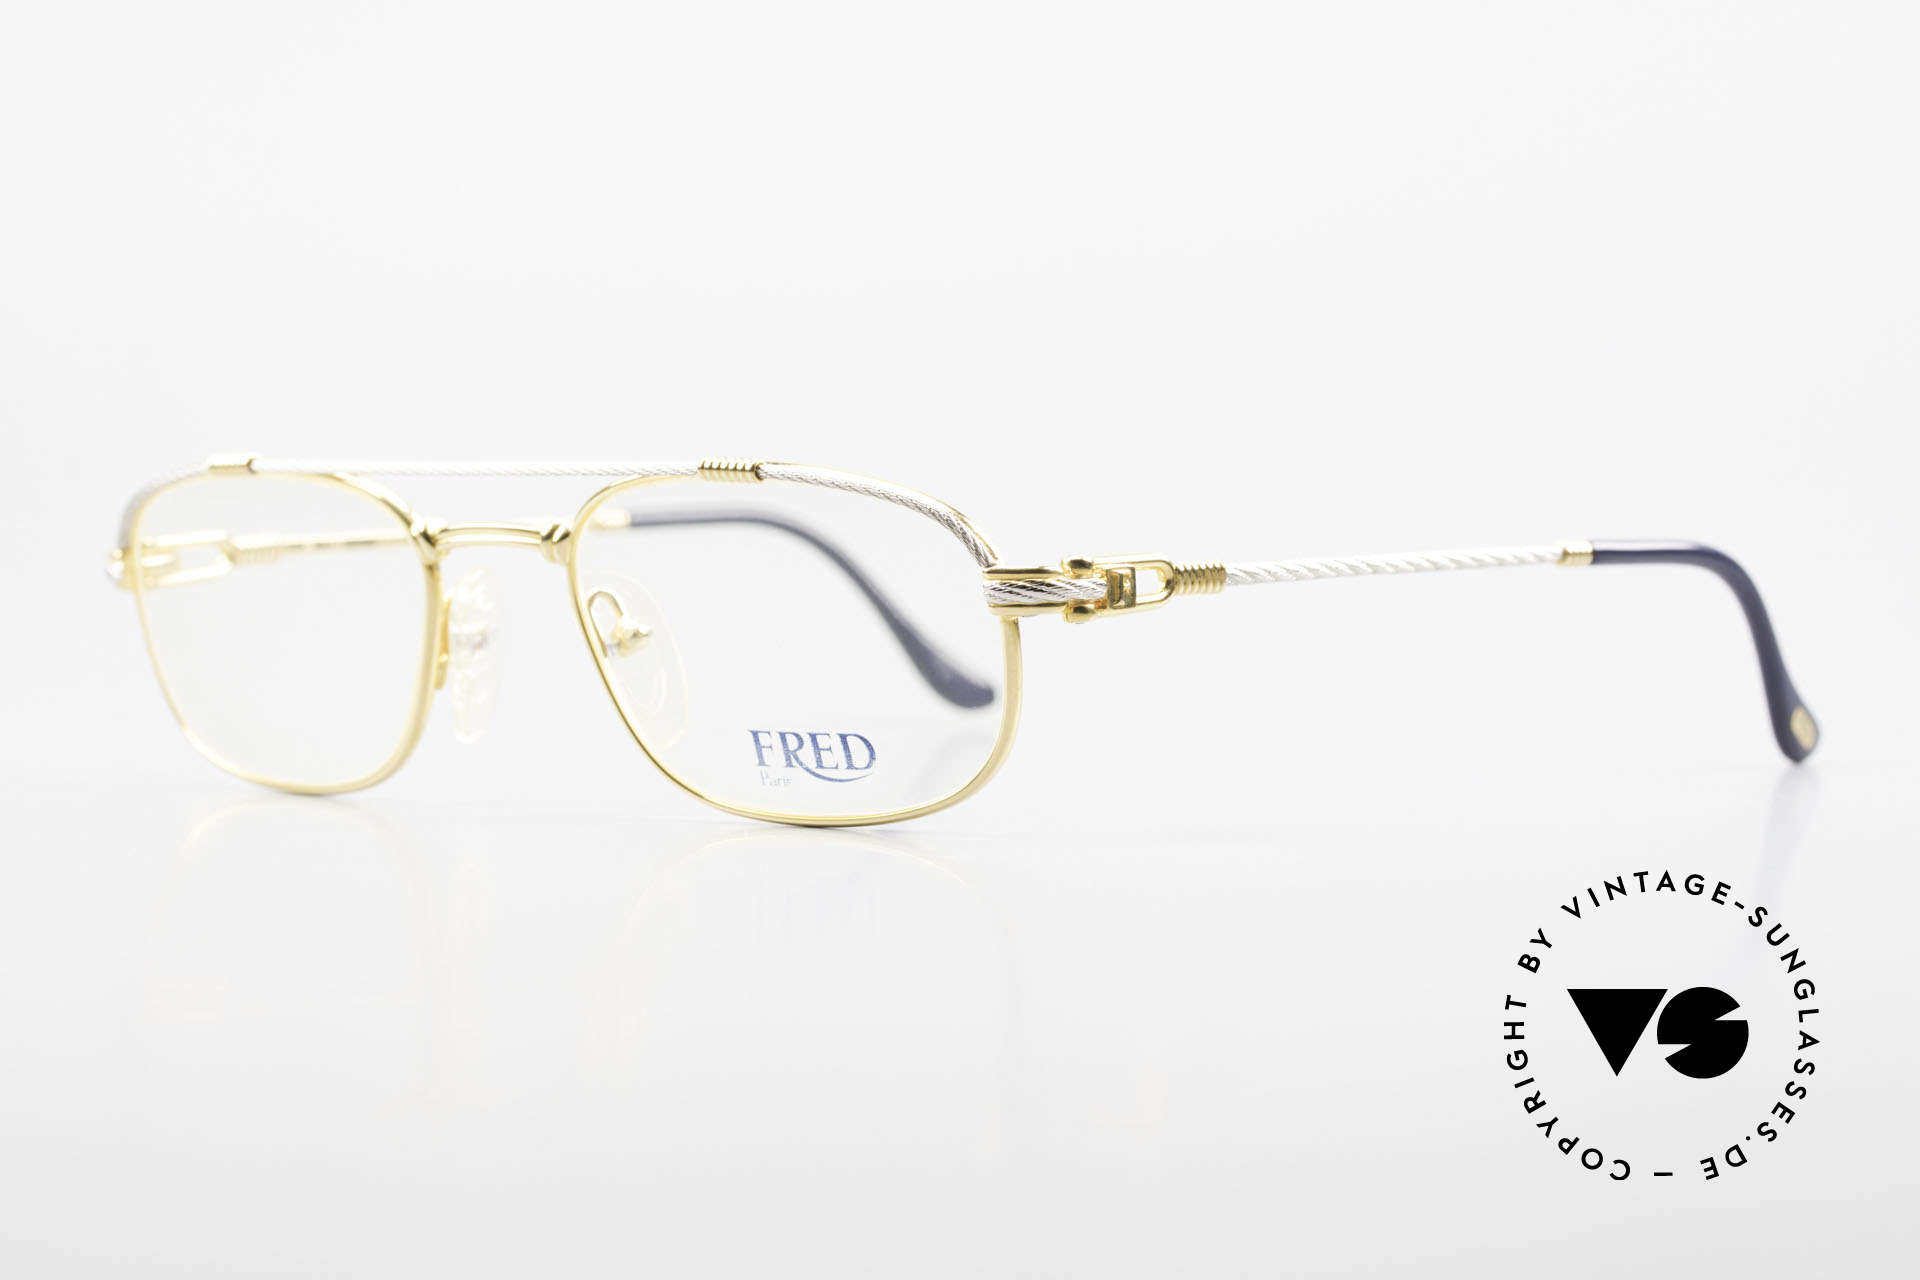 Fred Fregate Luxury Sailing Glasses S Frame, the name says it all: 'FREGATE' = French for 'frigate', Made for Men